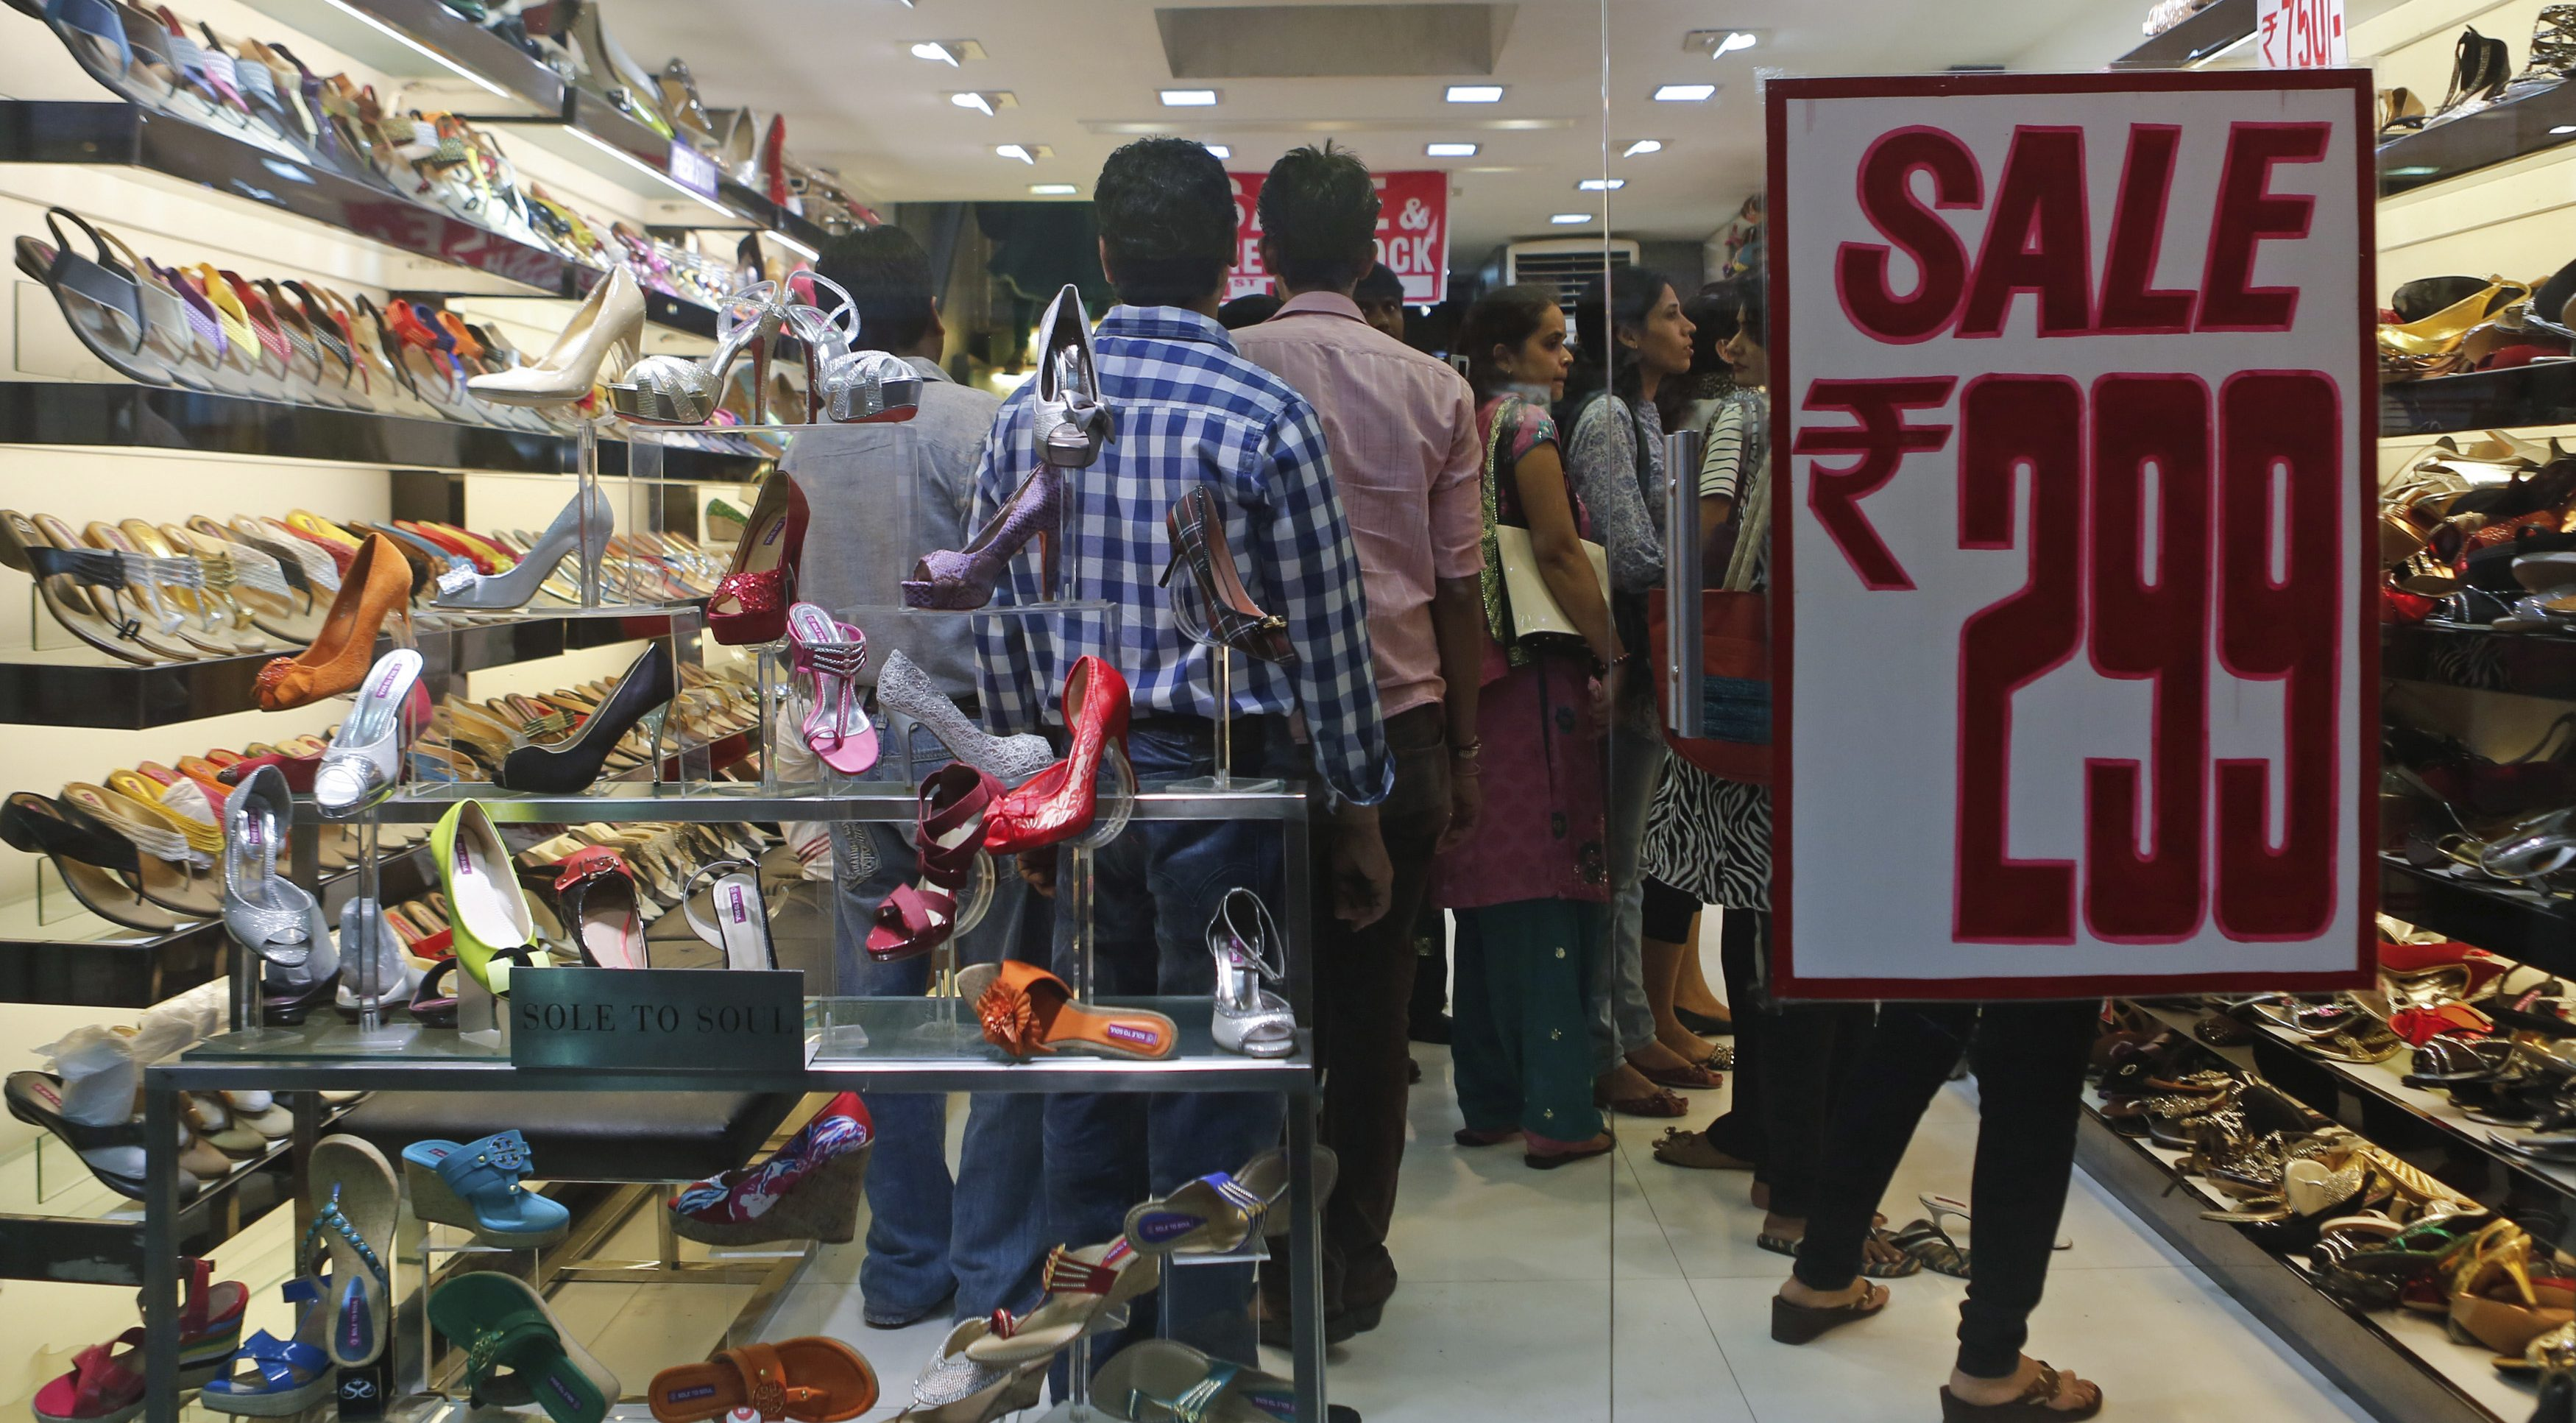 People shop inside a shoe store on a street in Mumbai September 11, 2013. In a capitulation that speaks to the depth of the slump in India's economy, usually tight-fisted retail landlords have become uncharacteristically flexible on rents. Retailers in India say they can now negotiate revenue sharing deals or discounts on rent of up to 20 percent and many are jumping at the chance, not necessarily because they see a bottom to the economic downturn but because the supply of new retail space is expected to tighten sharply from 2015. Picture taken September 11, 2013.          To match INDIA-RETAIL/REALESTATE